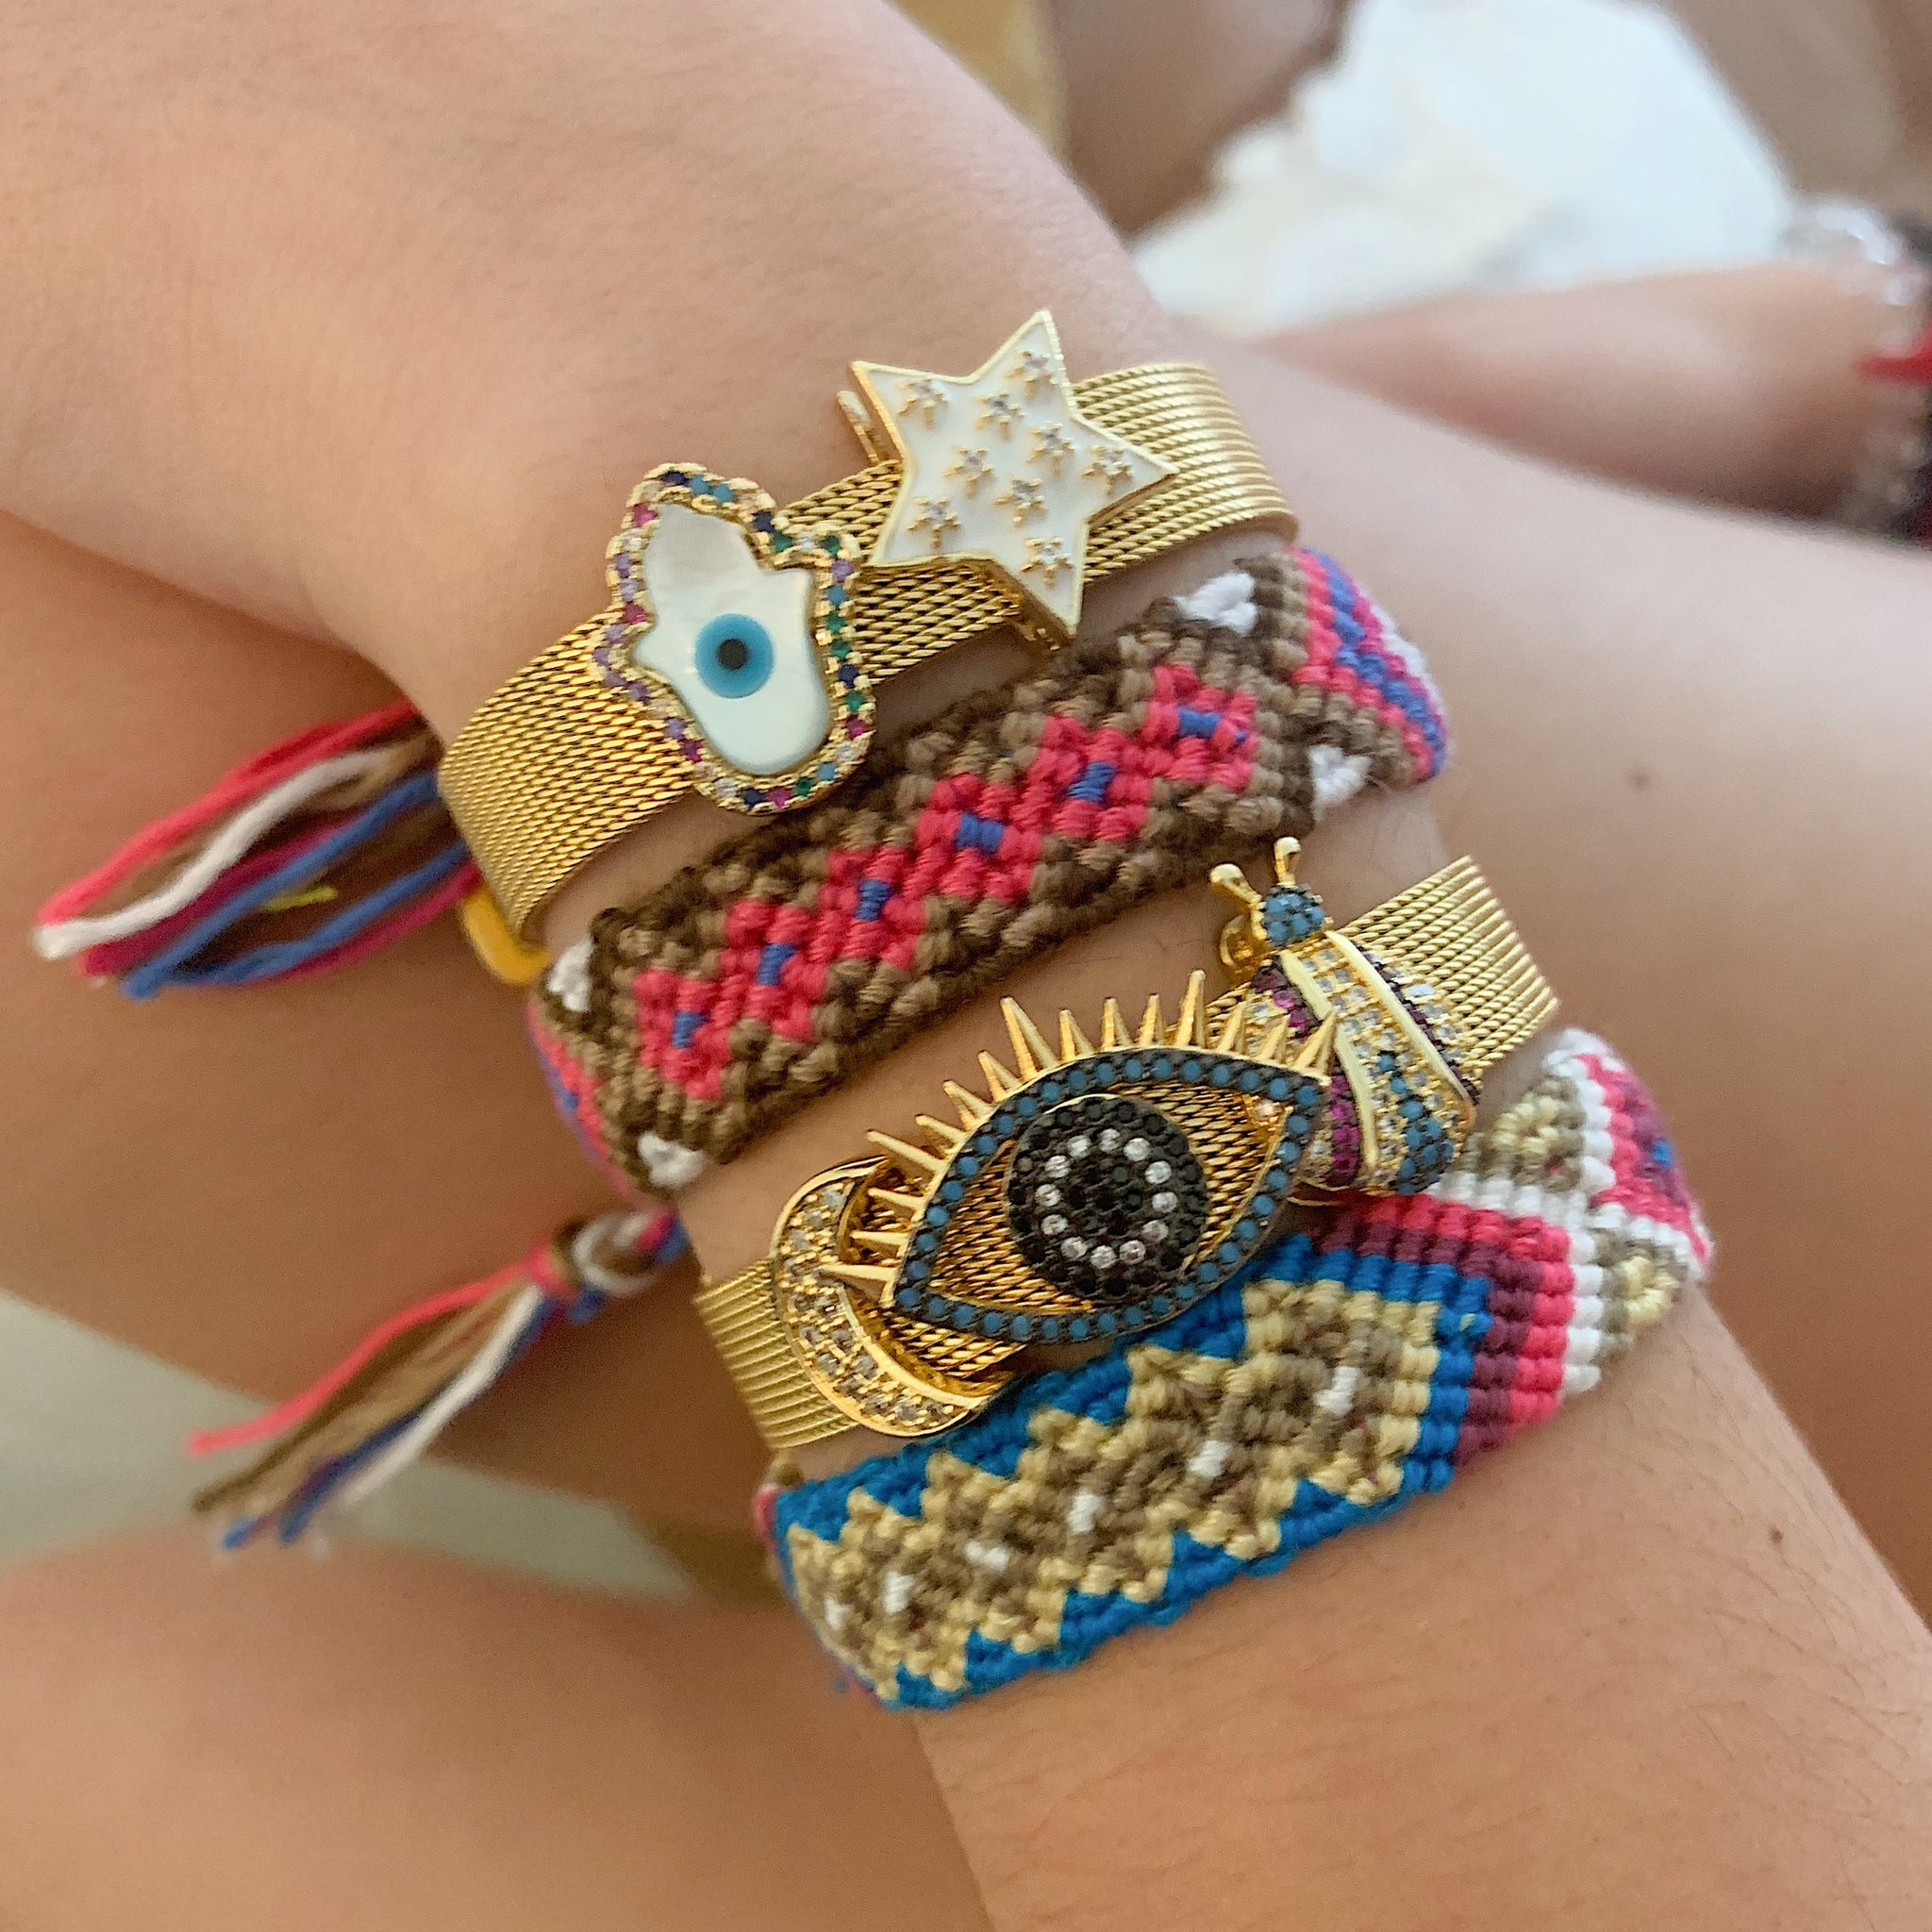 Mesh Adjustable Bracelets with mix & match charms